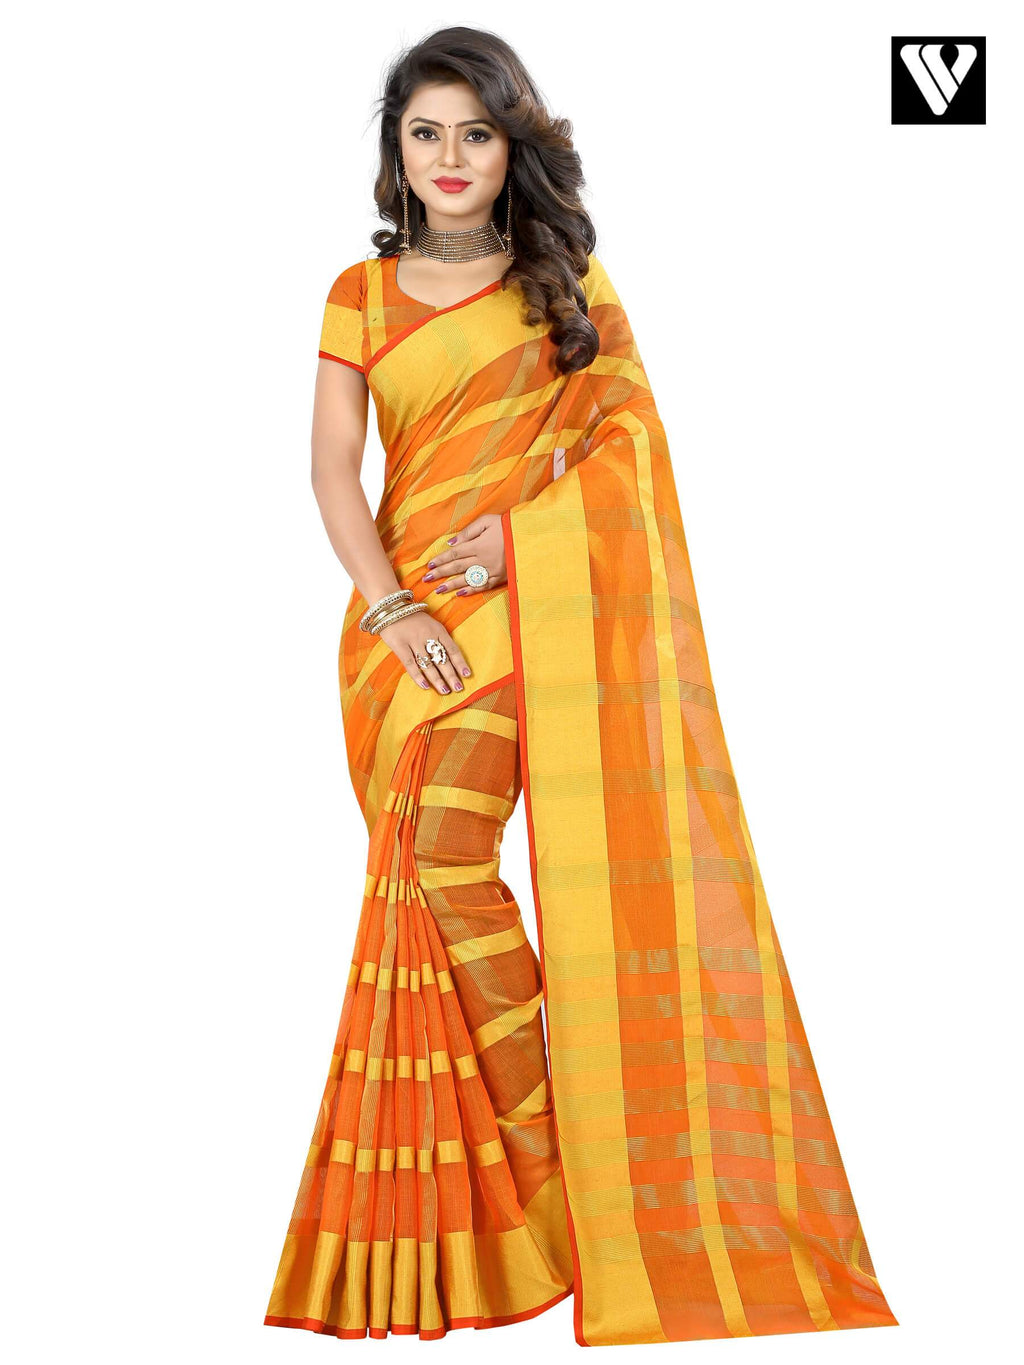 Temple Wear Orange Traditional Saree In Cotton